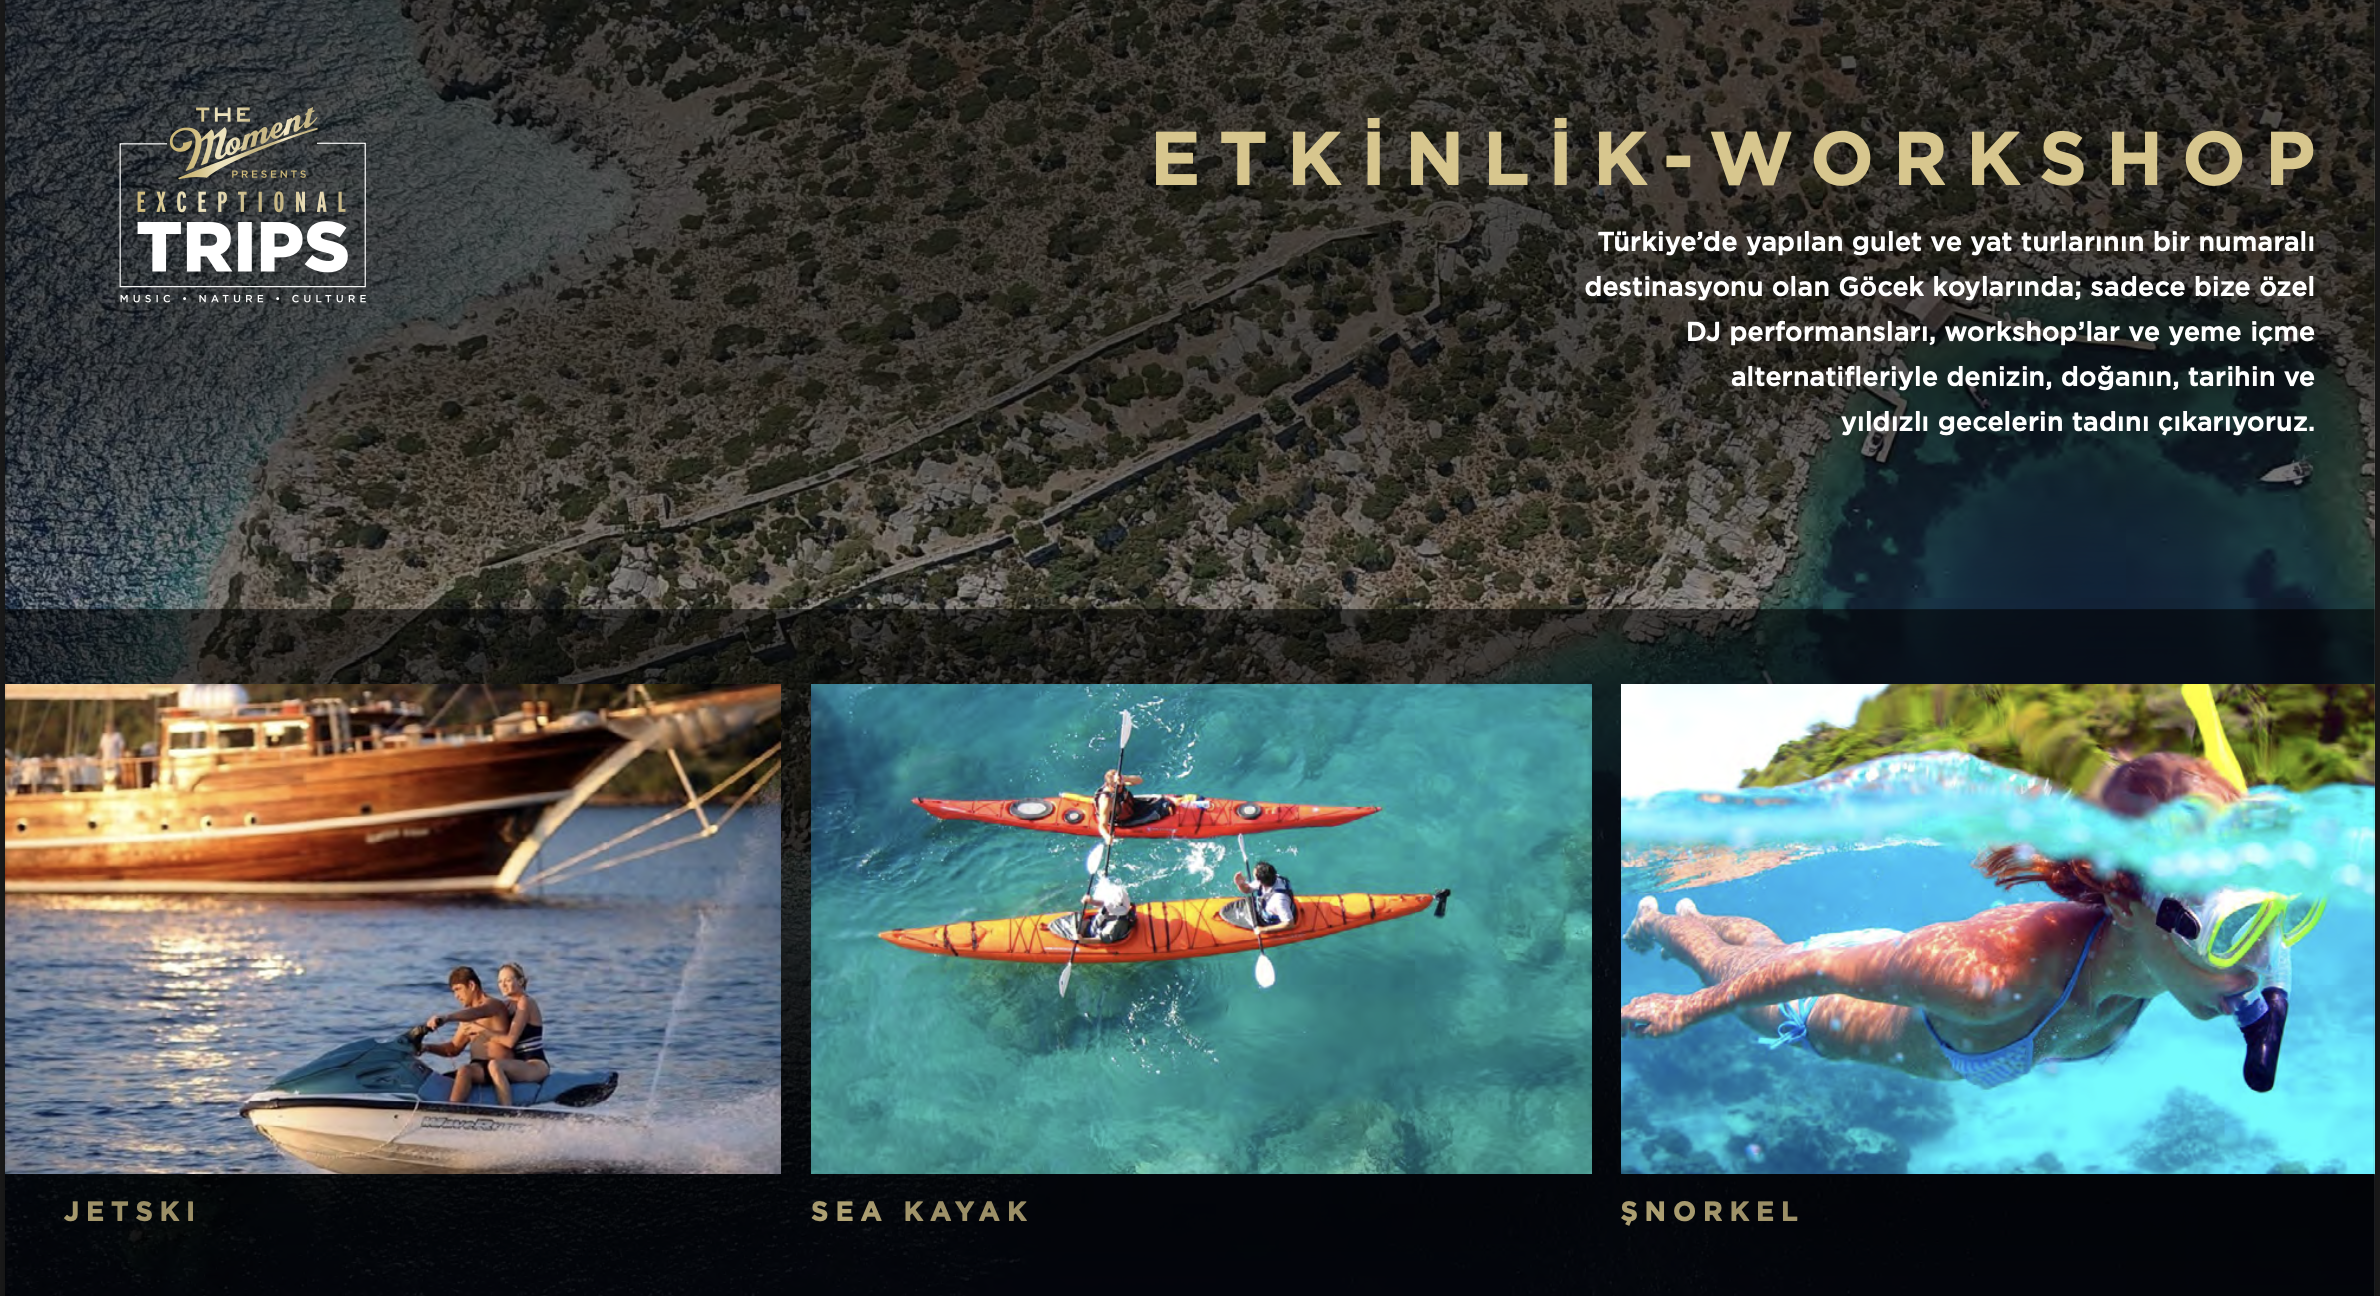 The Moment Presents : Exceptional Trips - GÖCEK